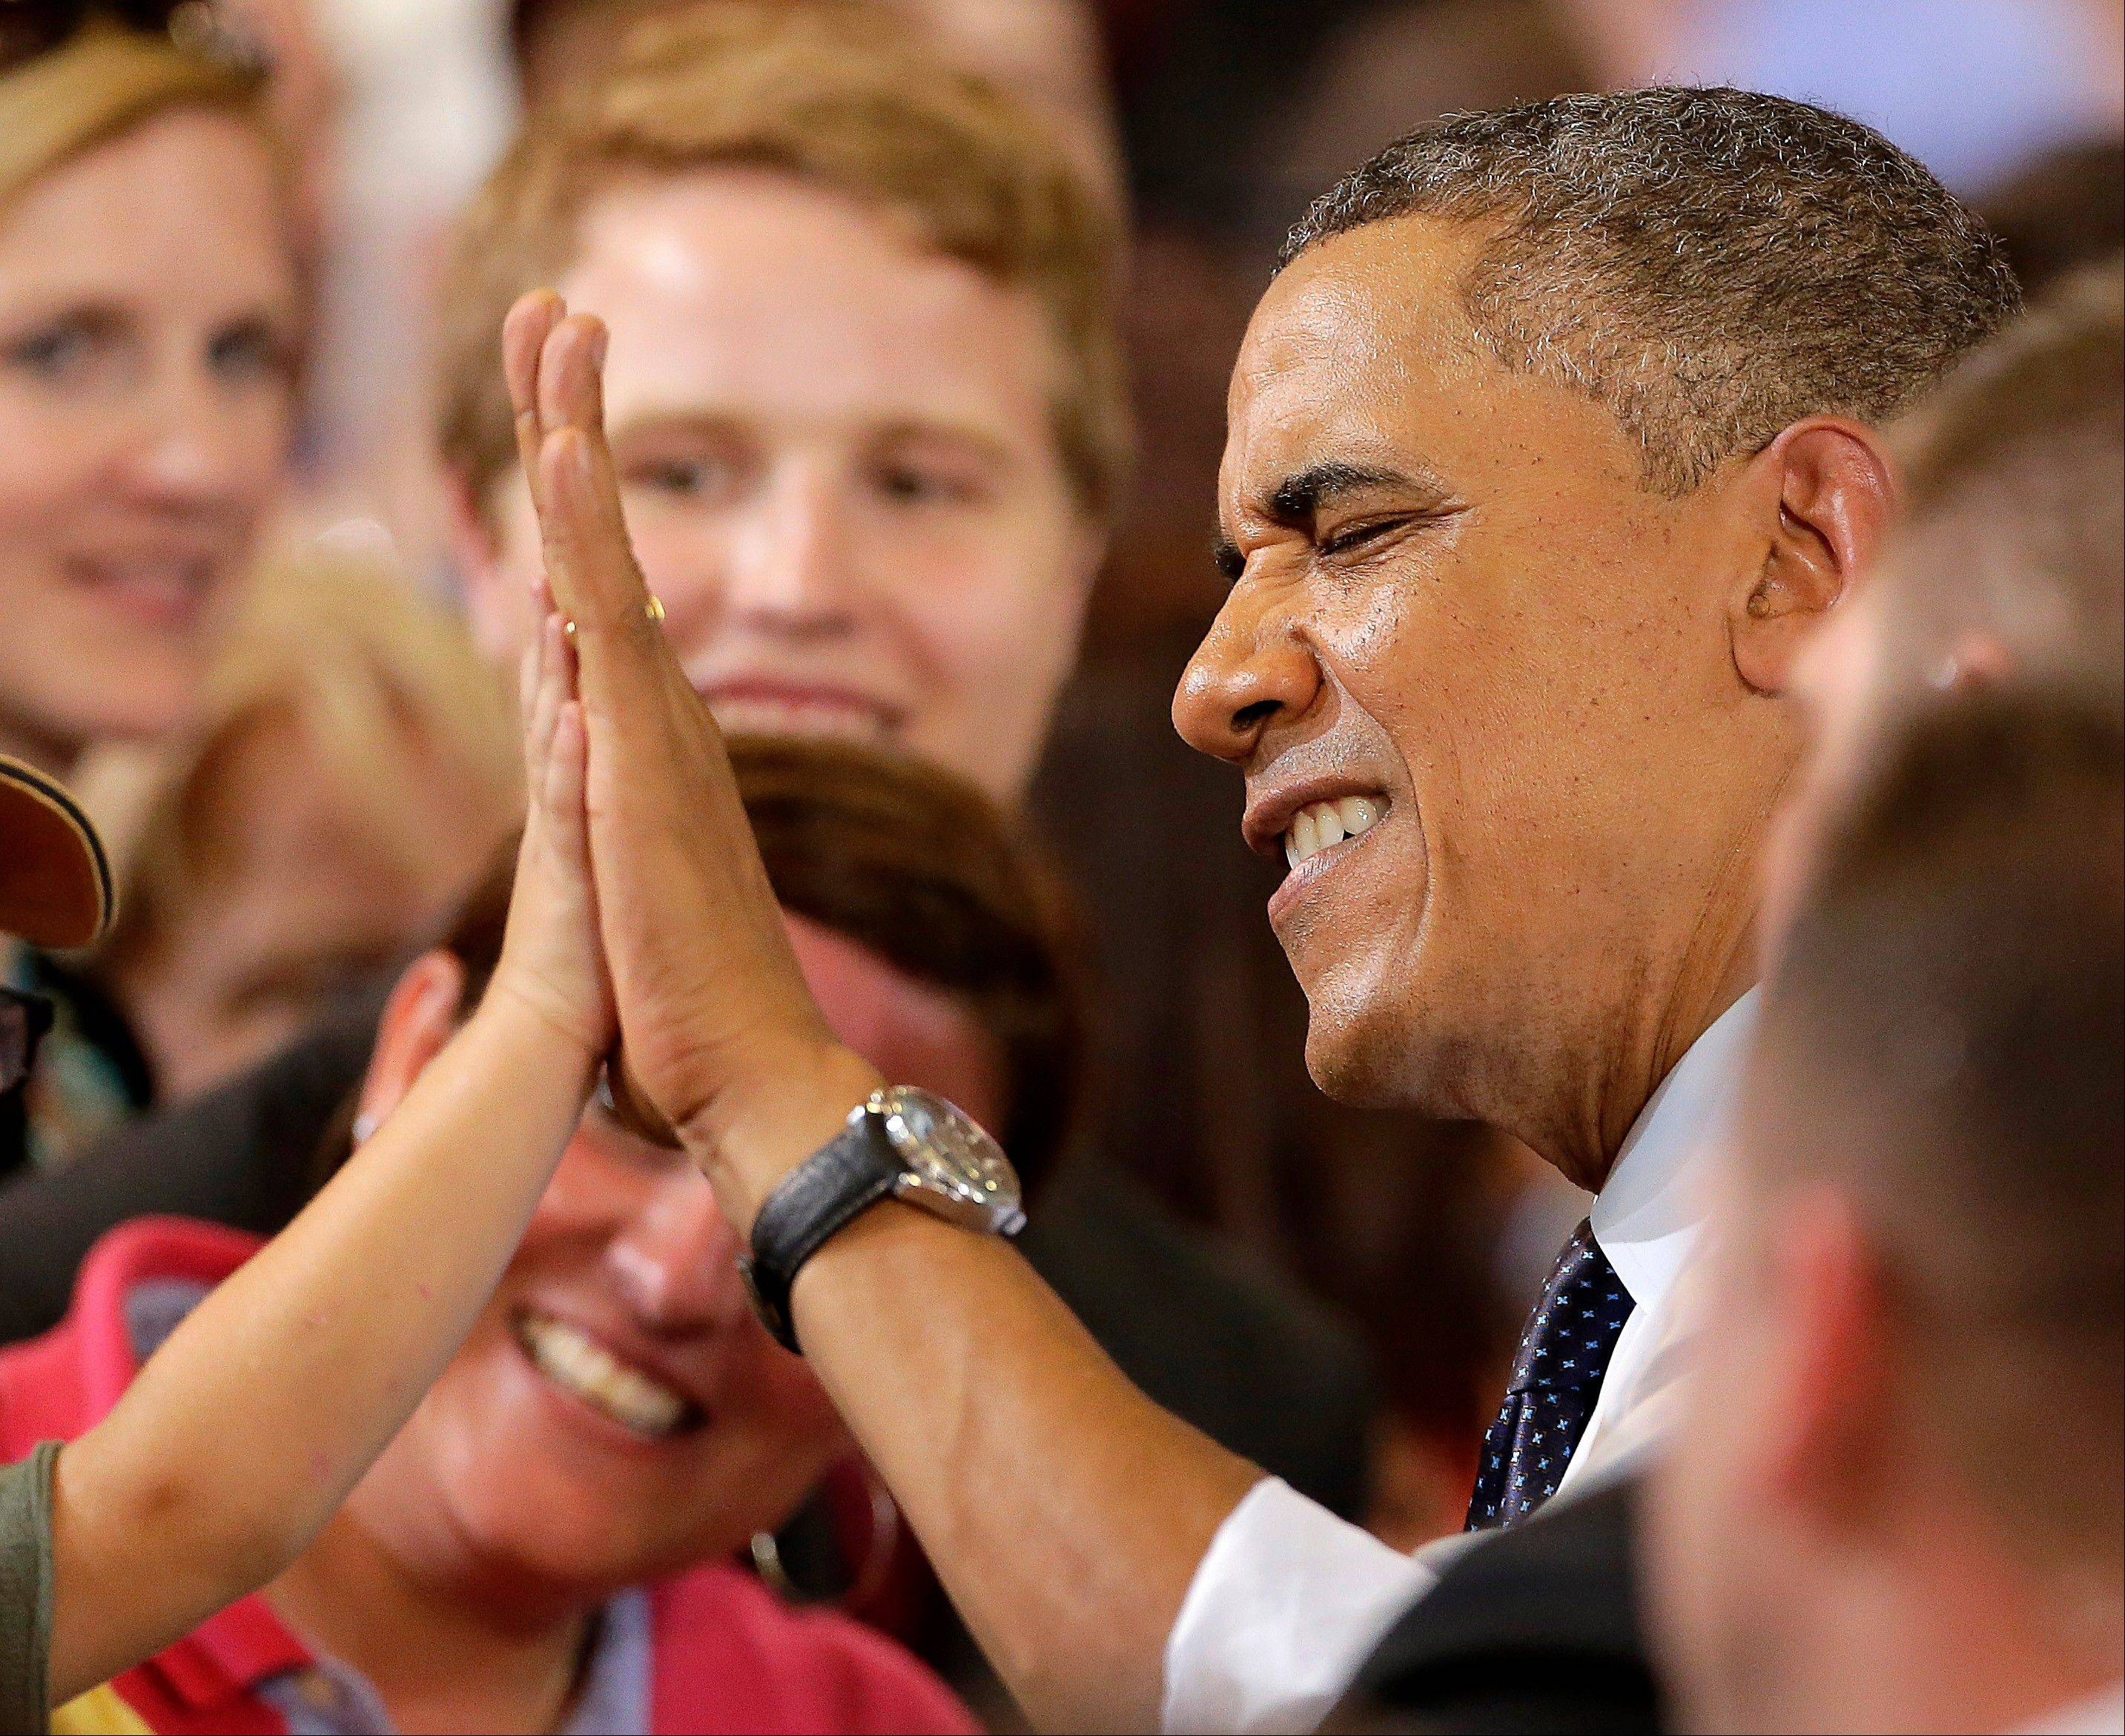 Associated Press President Barack Obama gets a high-five after speaking about the economy, Wednesday, July 24, 2013, at the University of Central Missouri in Warrensburg, Mo.